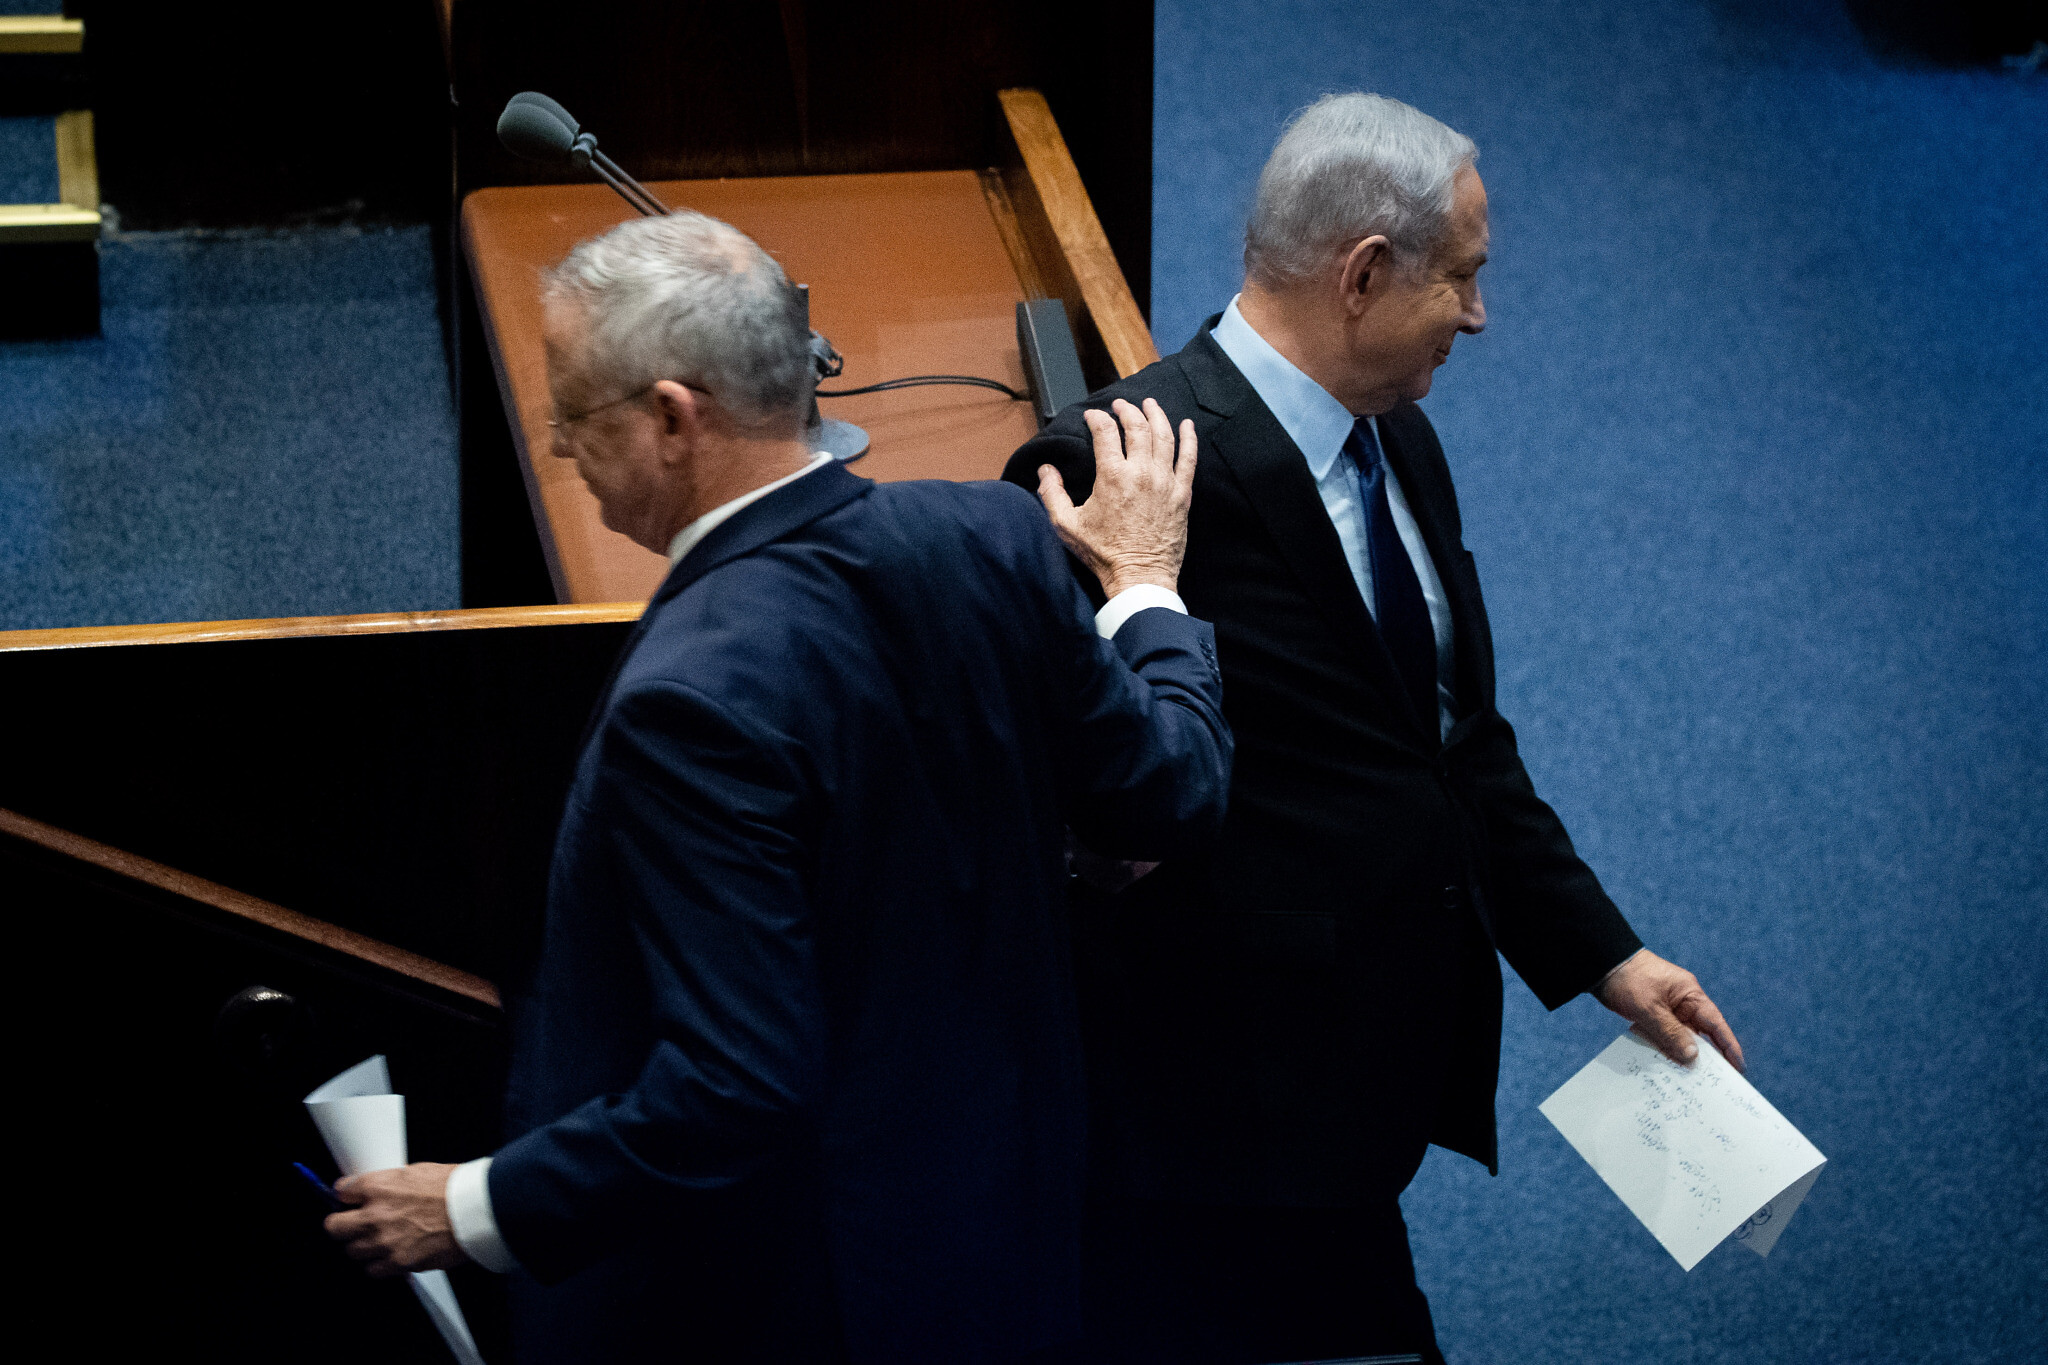 Israel President Denies Benny Gantz's Request for More Time to Form Govt